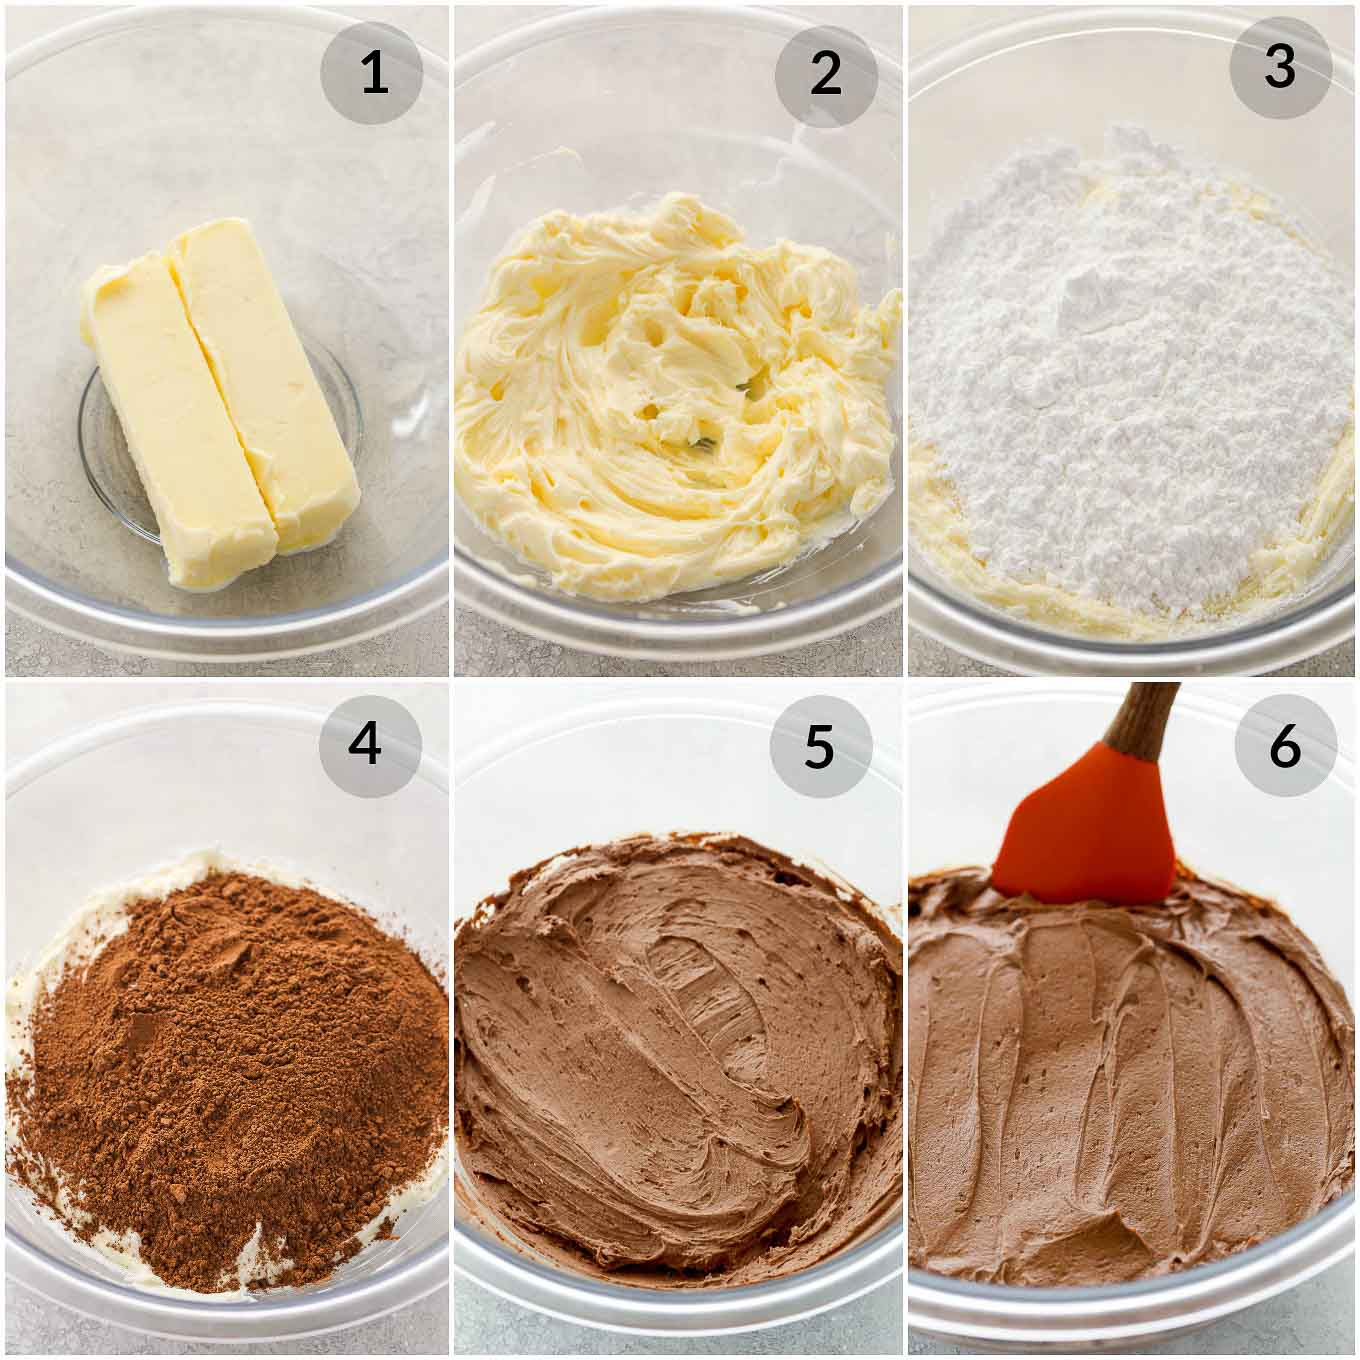 Learn how to make chocolate buttercream frosting with this easy recipe and tutorial. This is my favorite recipe for chocolate frosting, it's easy to make with just a few simple ingredients, and pipes perfectly too. Perfect for cakes, cupcakes, and so much more!